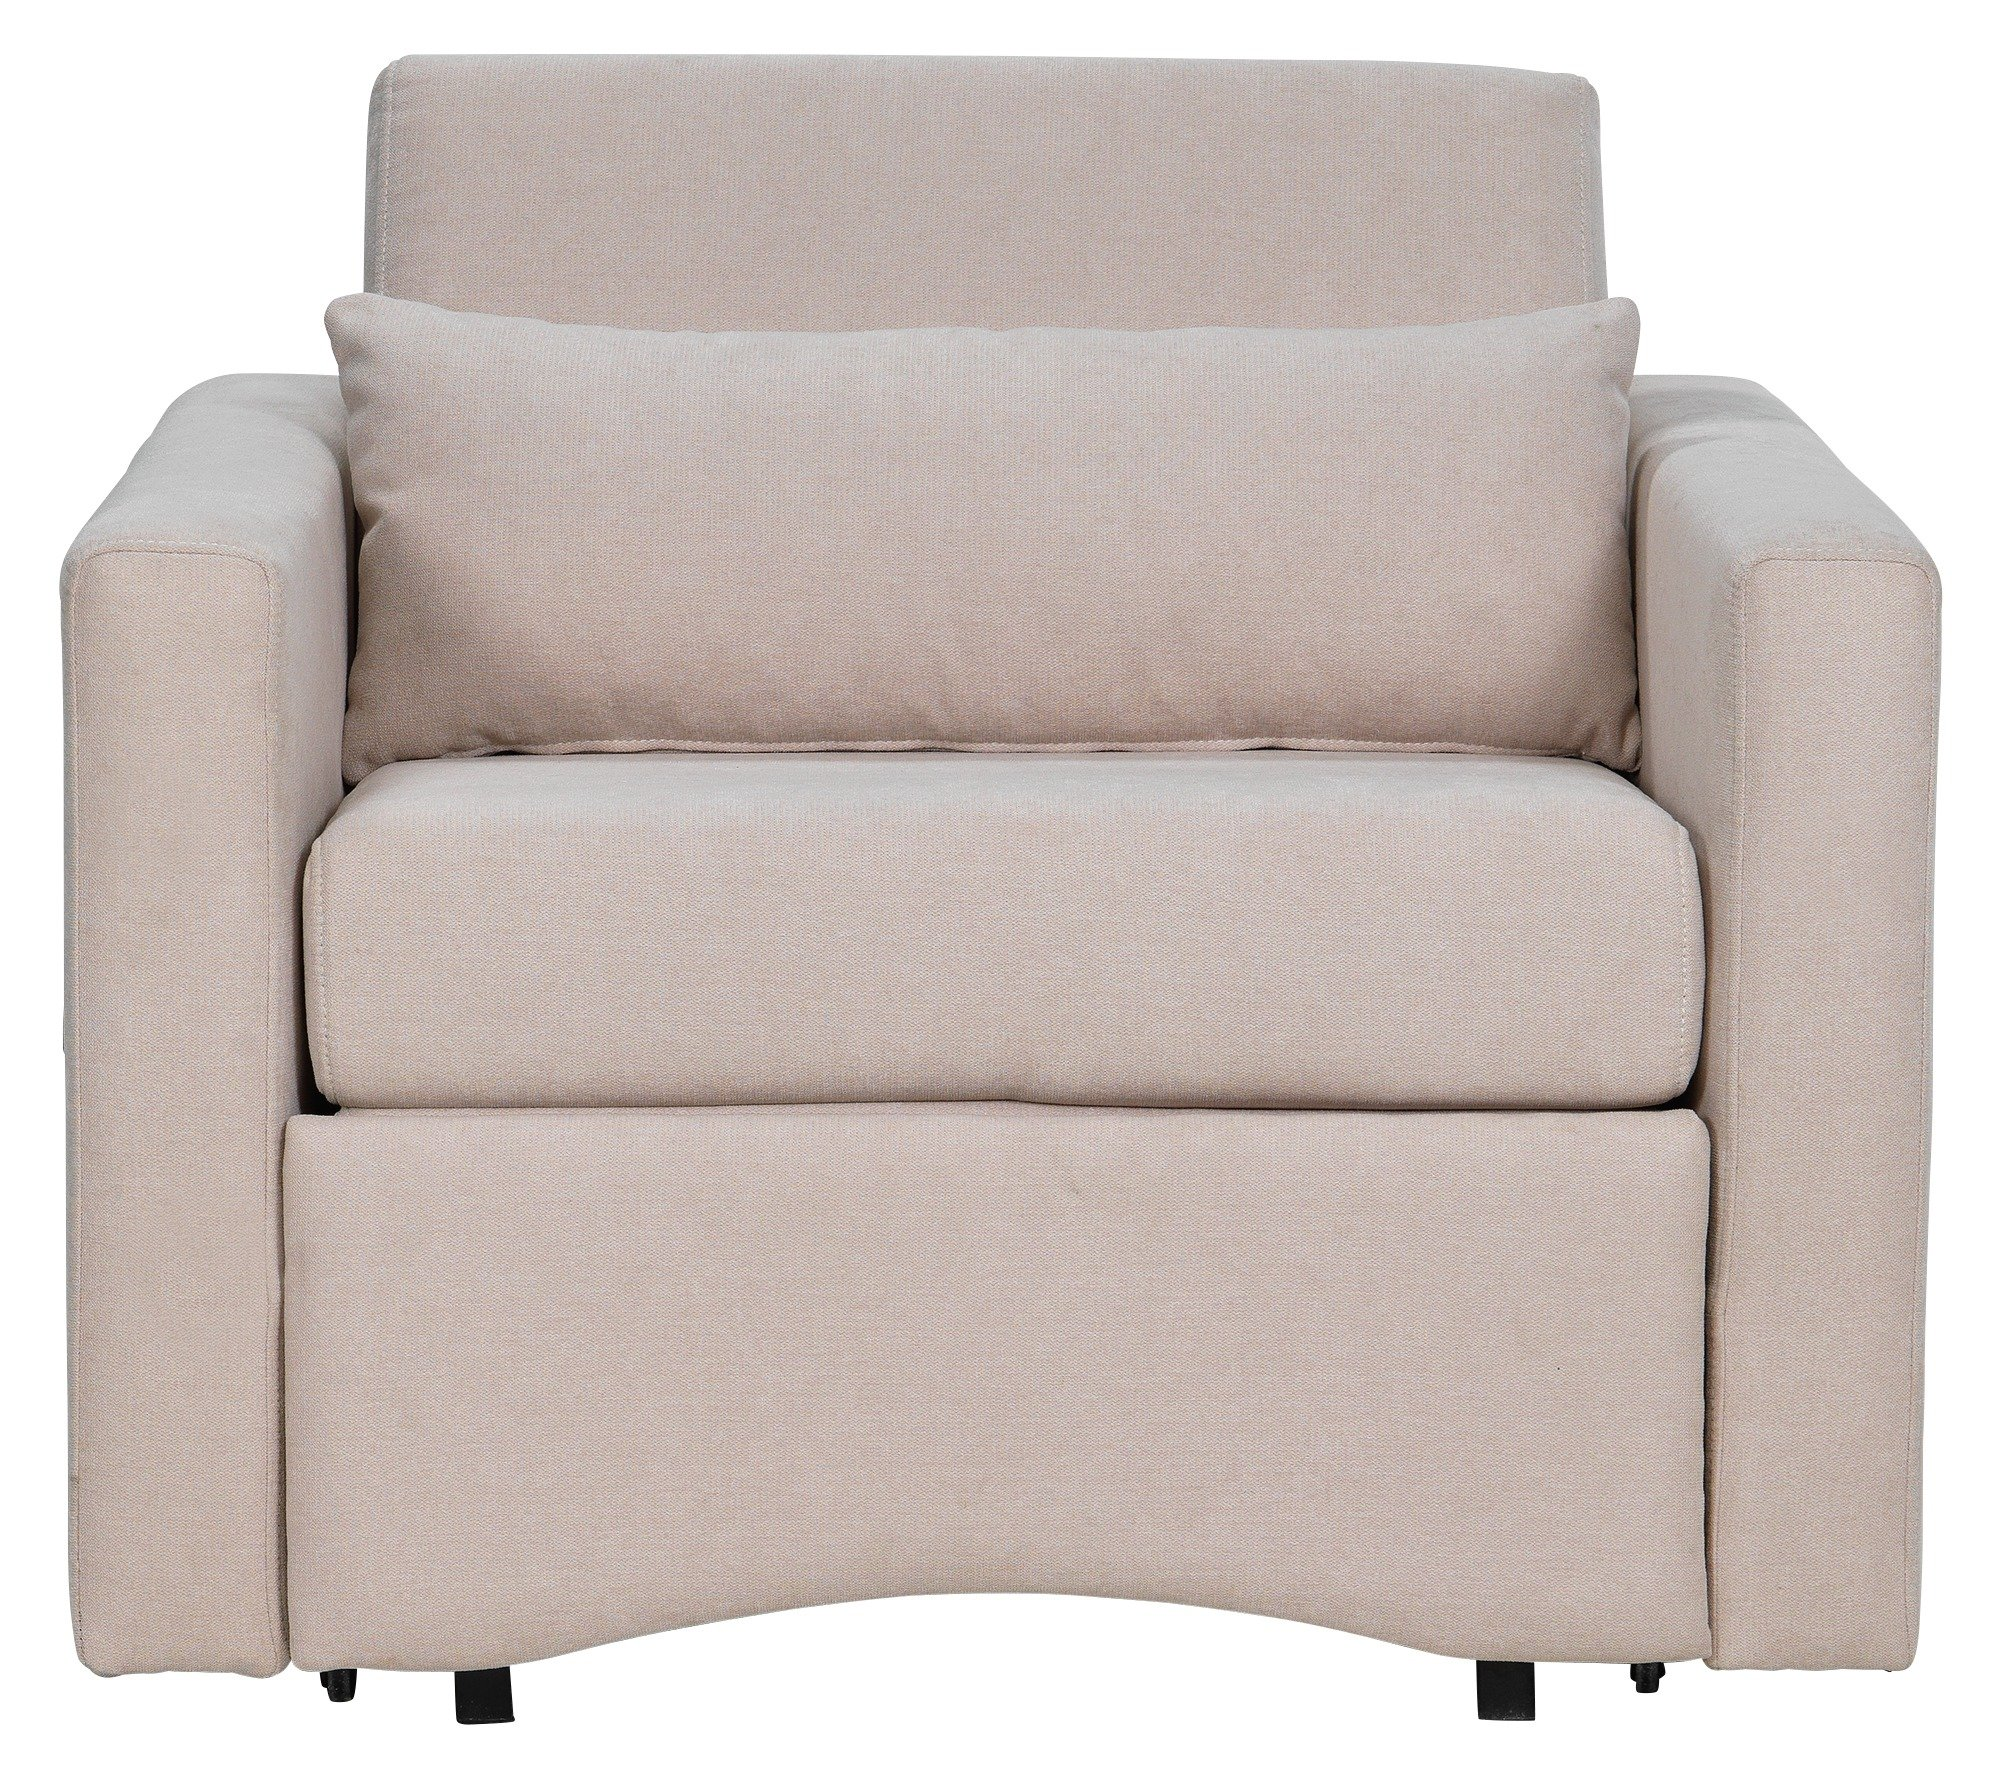 Argos Home Reagan Fabric Chairbed - Natural